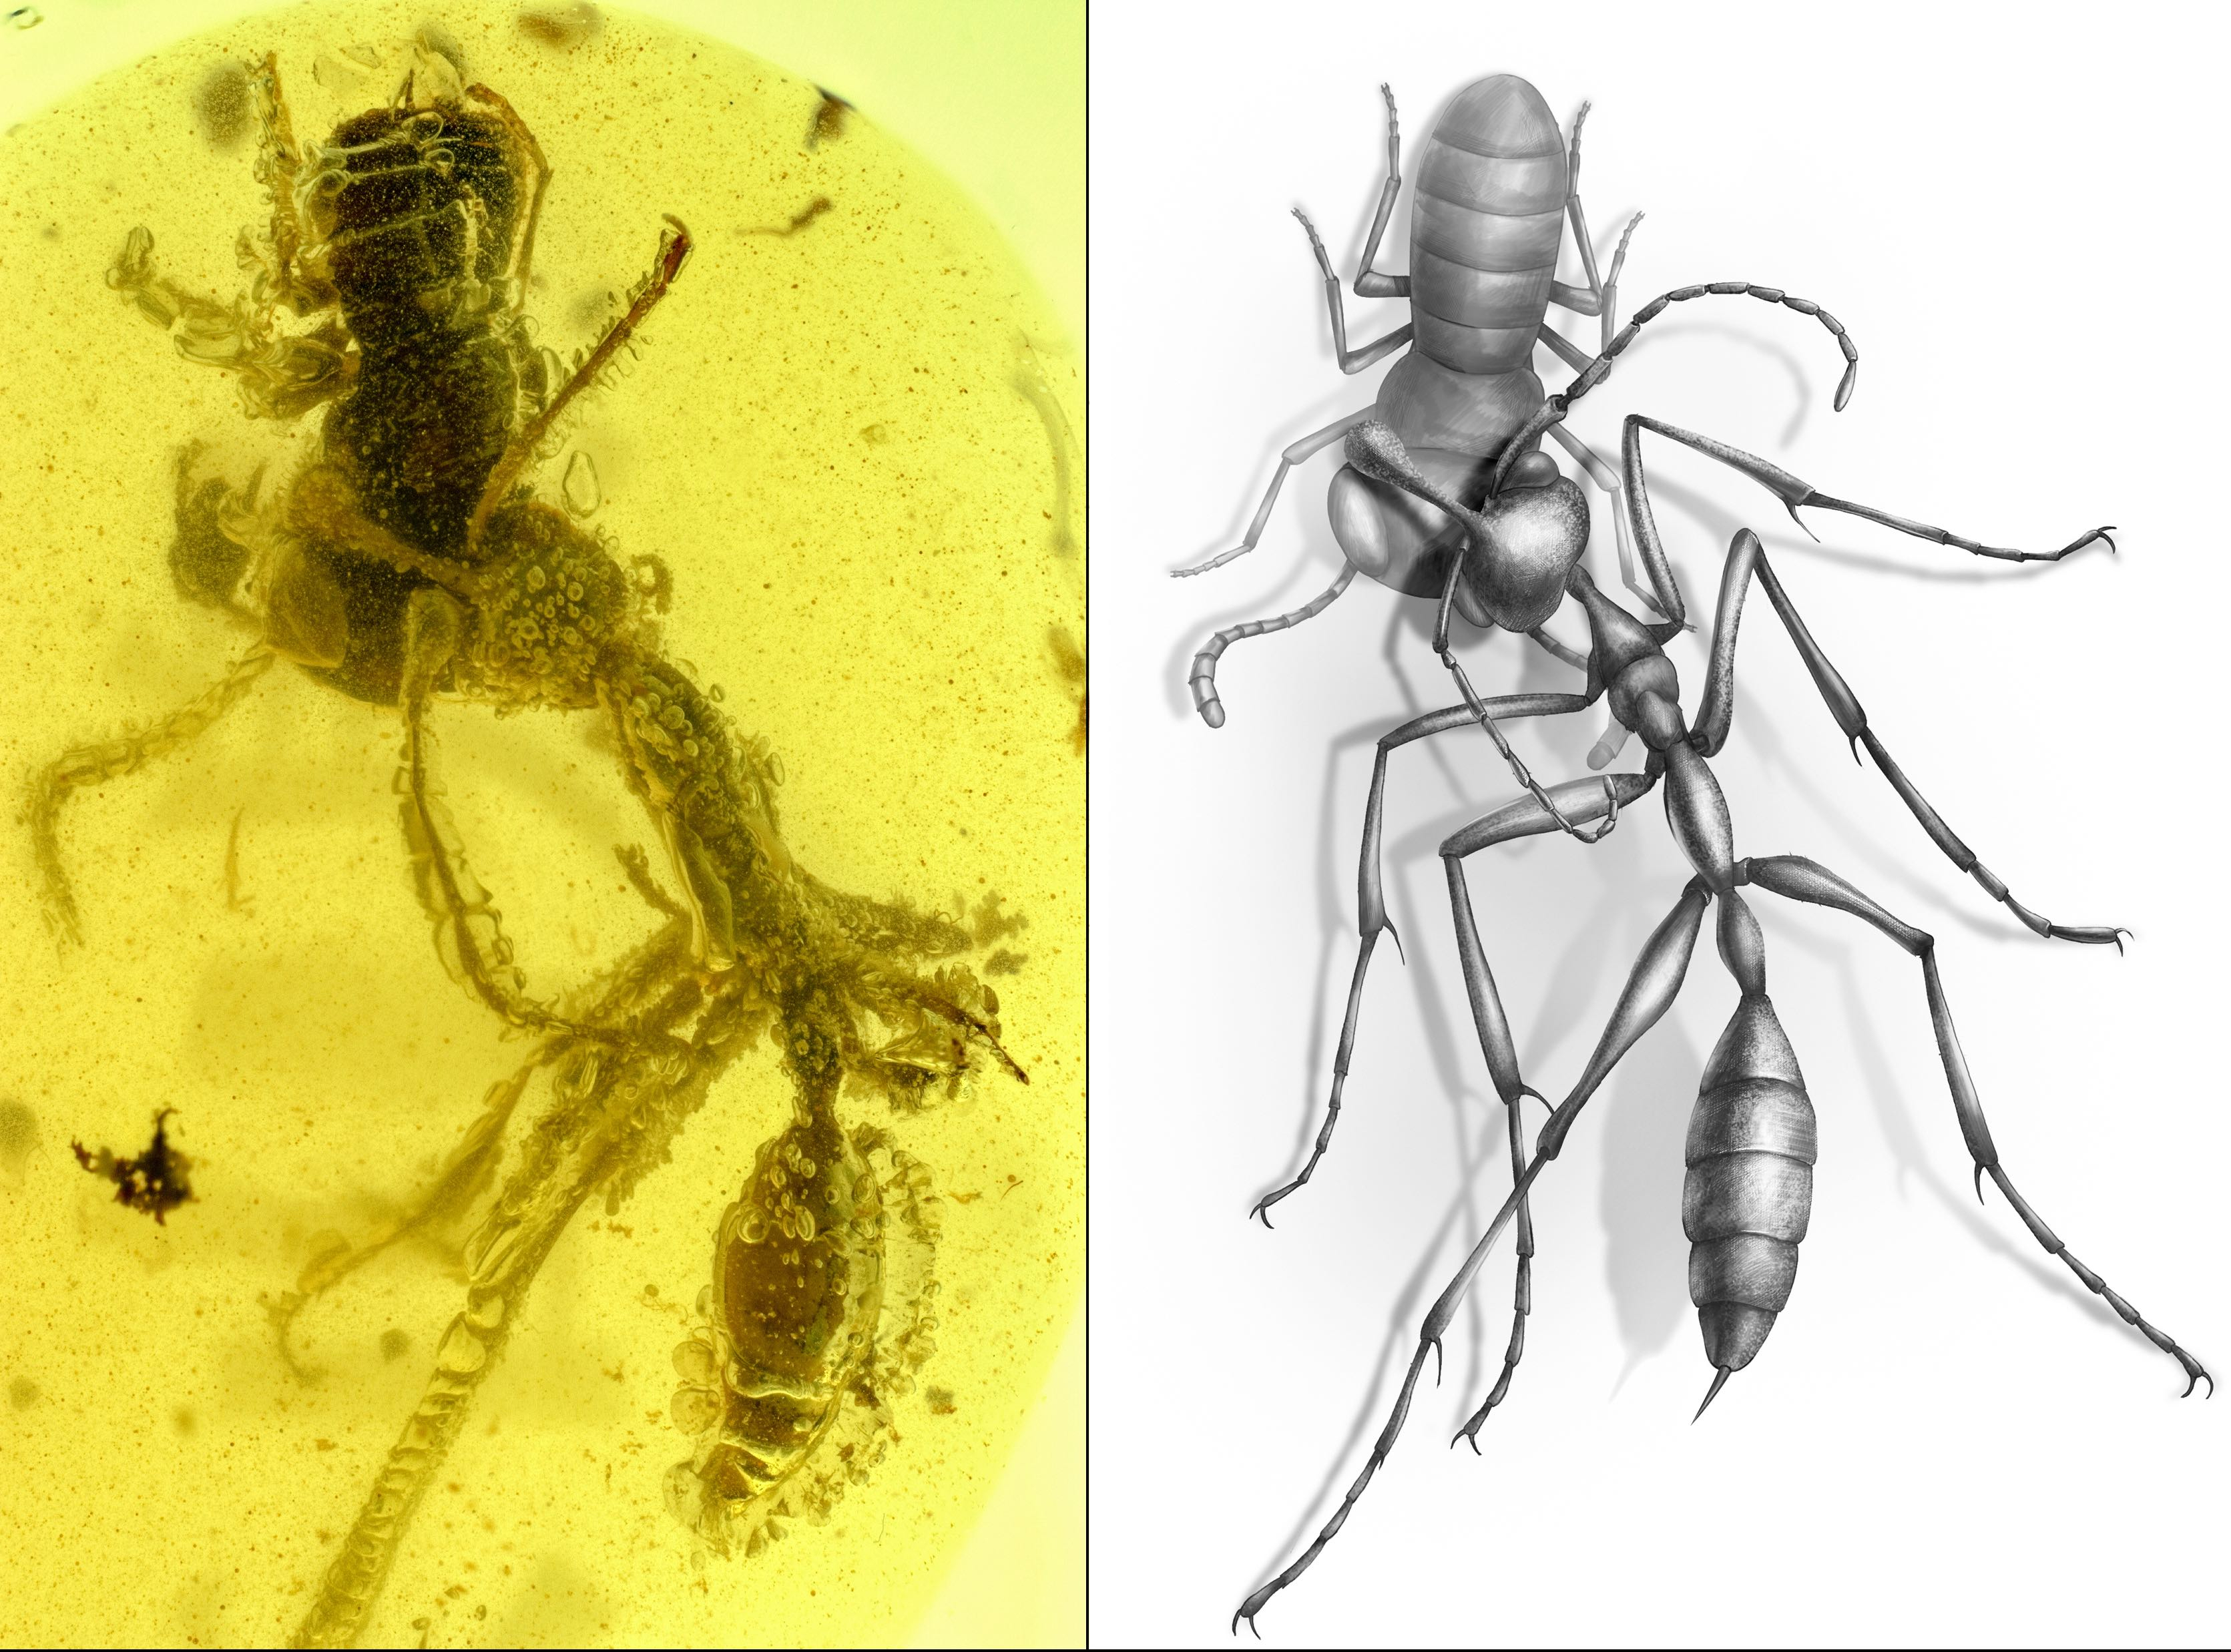 Hunting 'Hell Ant' Fossil Discovery